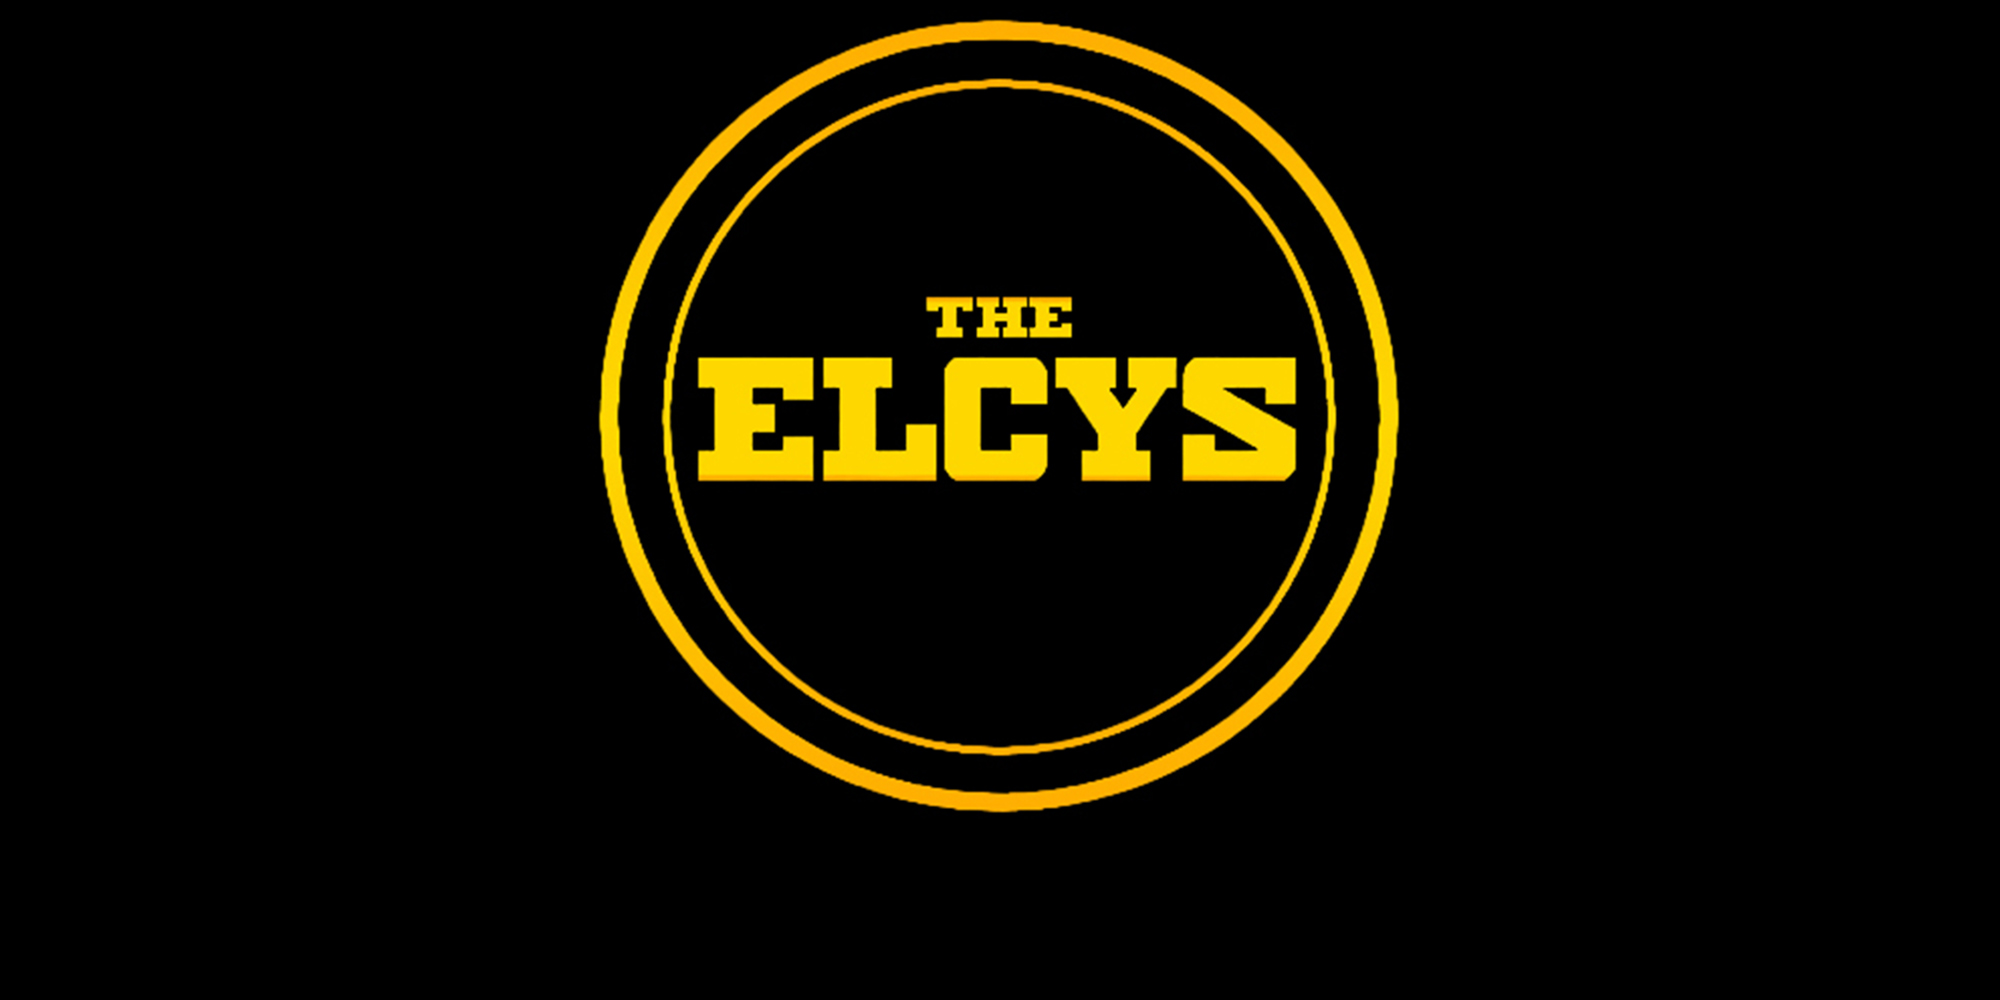 Student-athletes conclude the season at the 2018 ELCYS